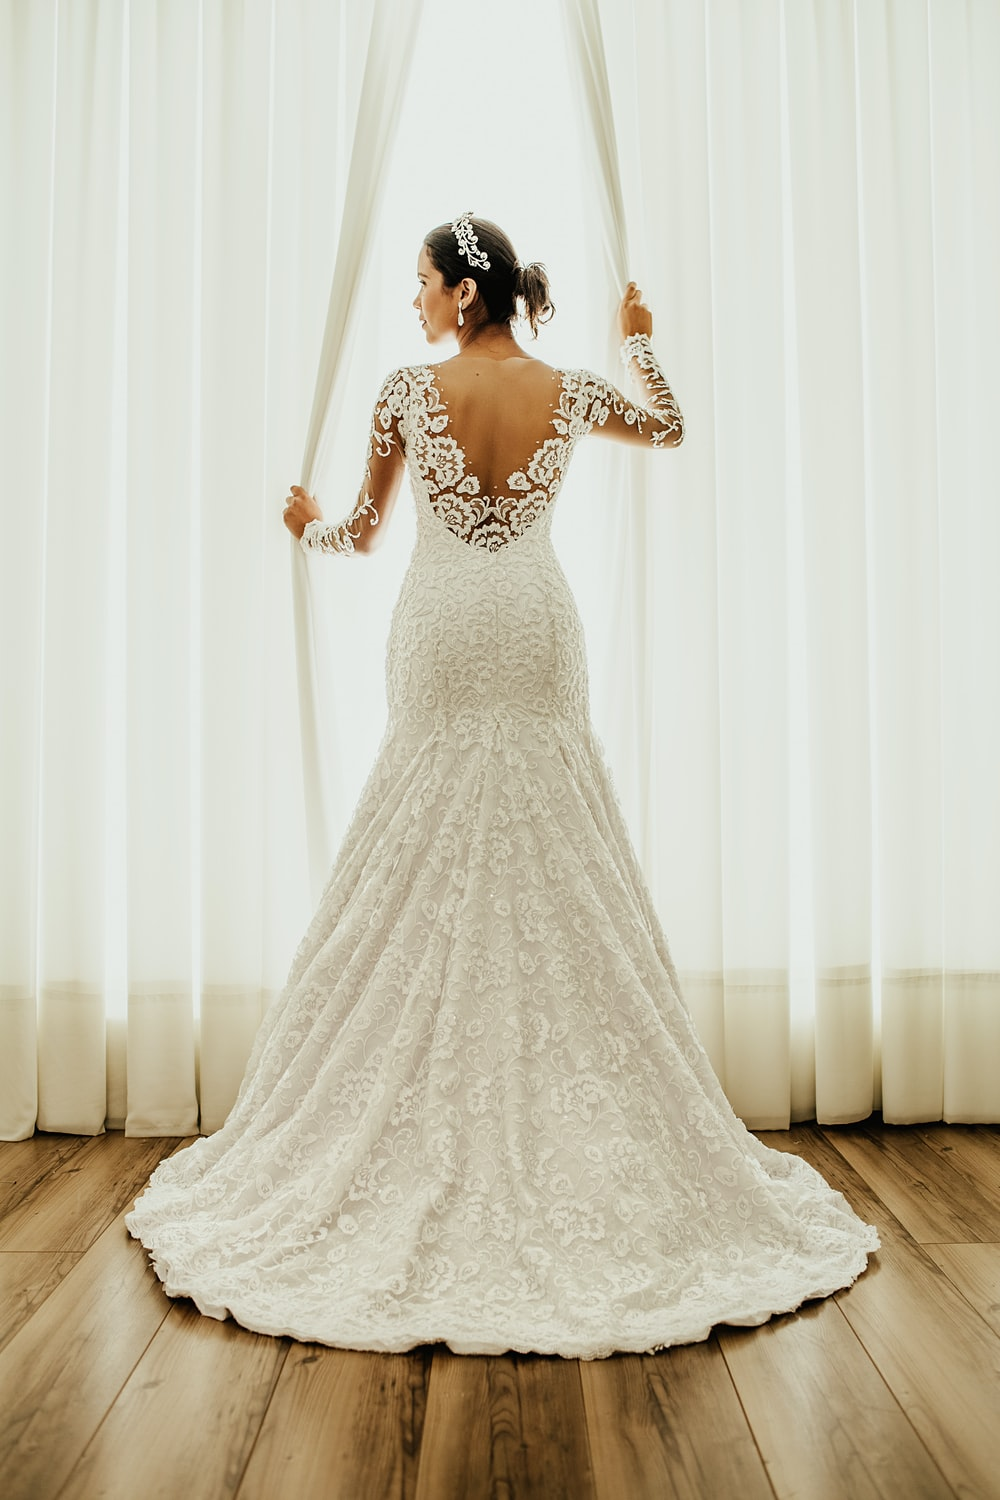 white wedding dress and white curtains